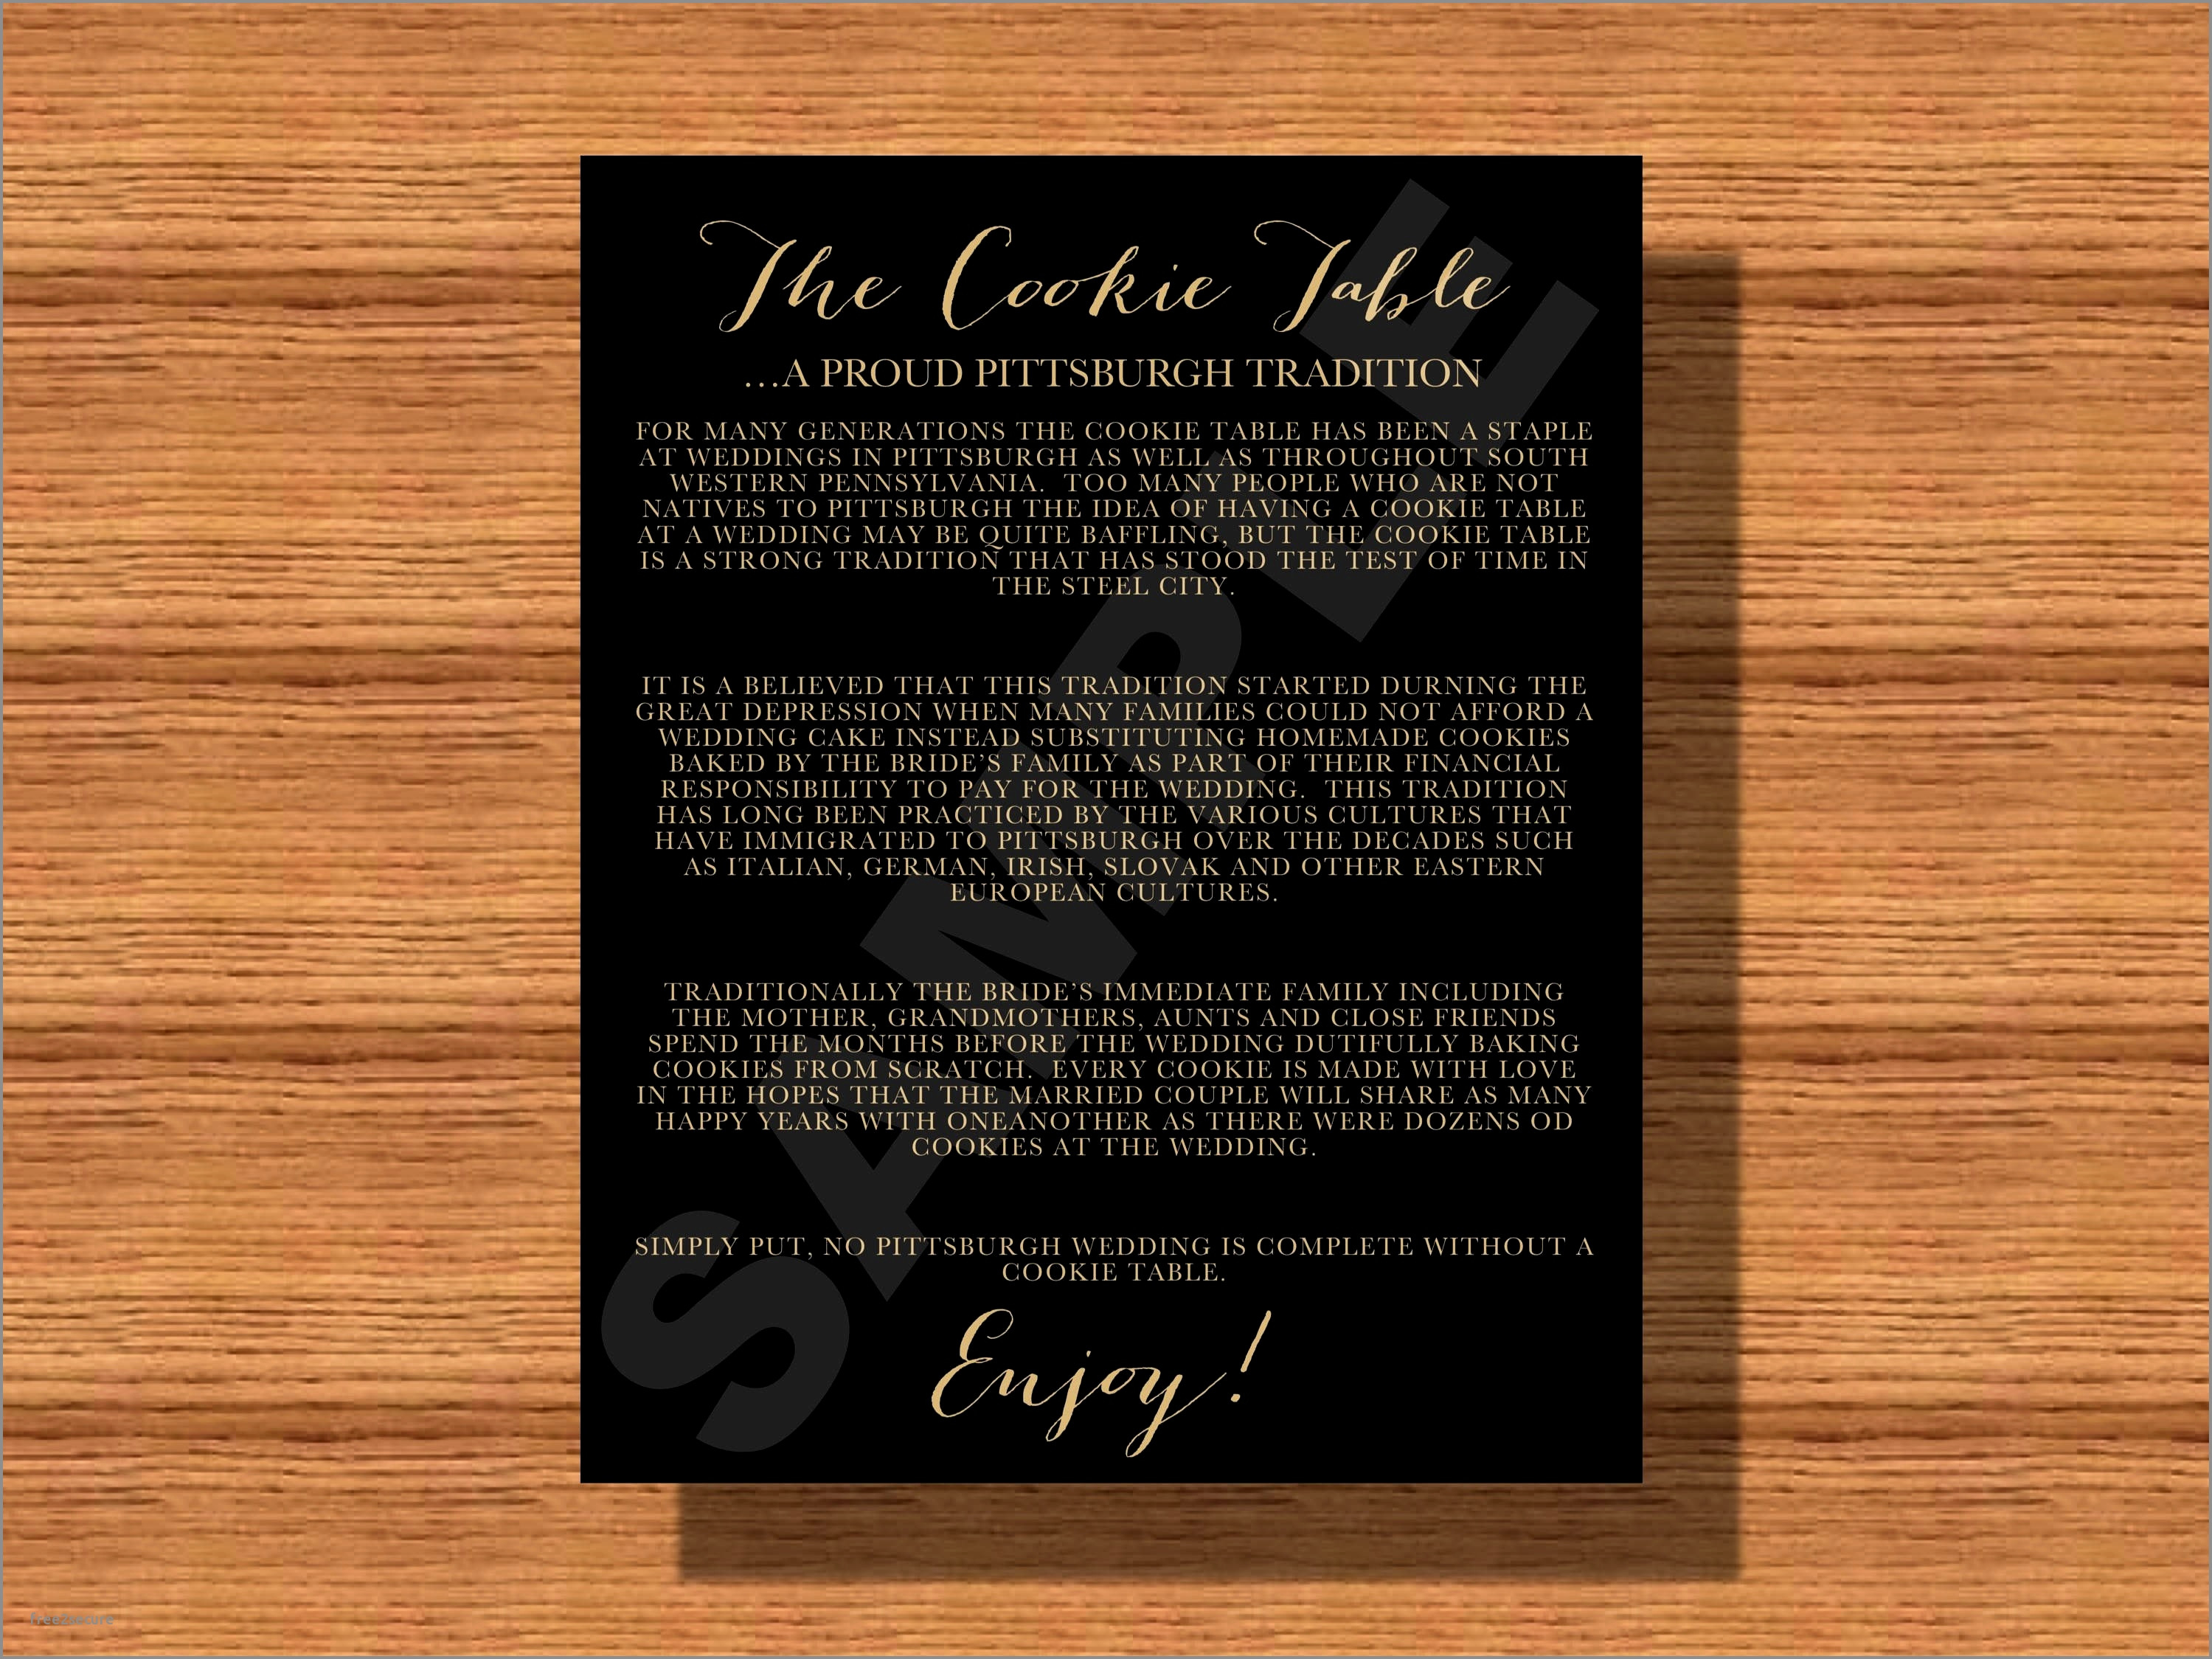 Diwali Party Invite Template Wording For Wedding Party Invitation throughout sizing 2999 X 2249